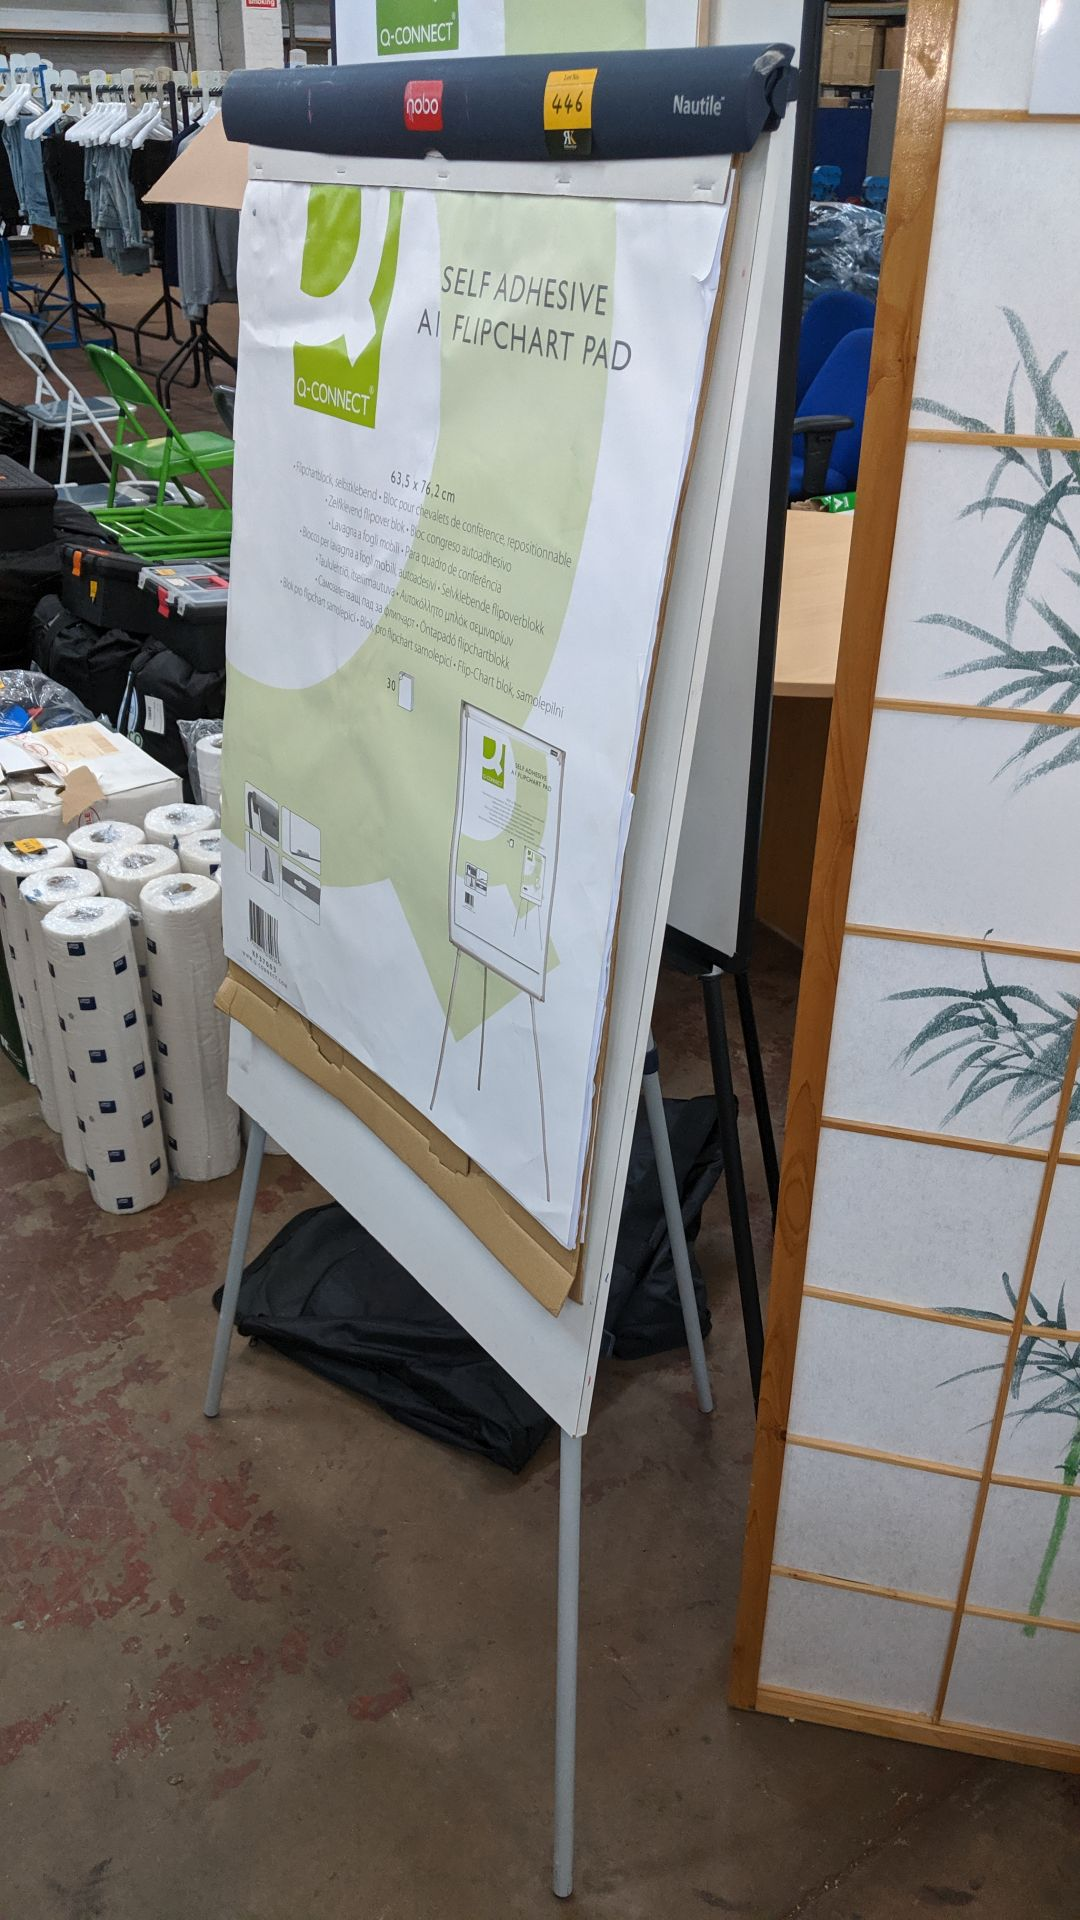 Lot 446 - Nobo Nautile flipchart/whiteboard. This is one of a large number of lots used/owned by One To One (